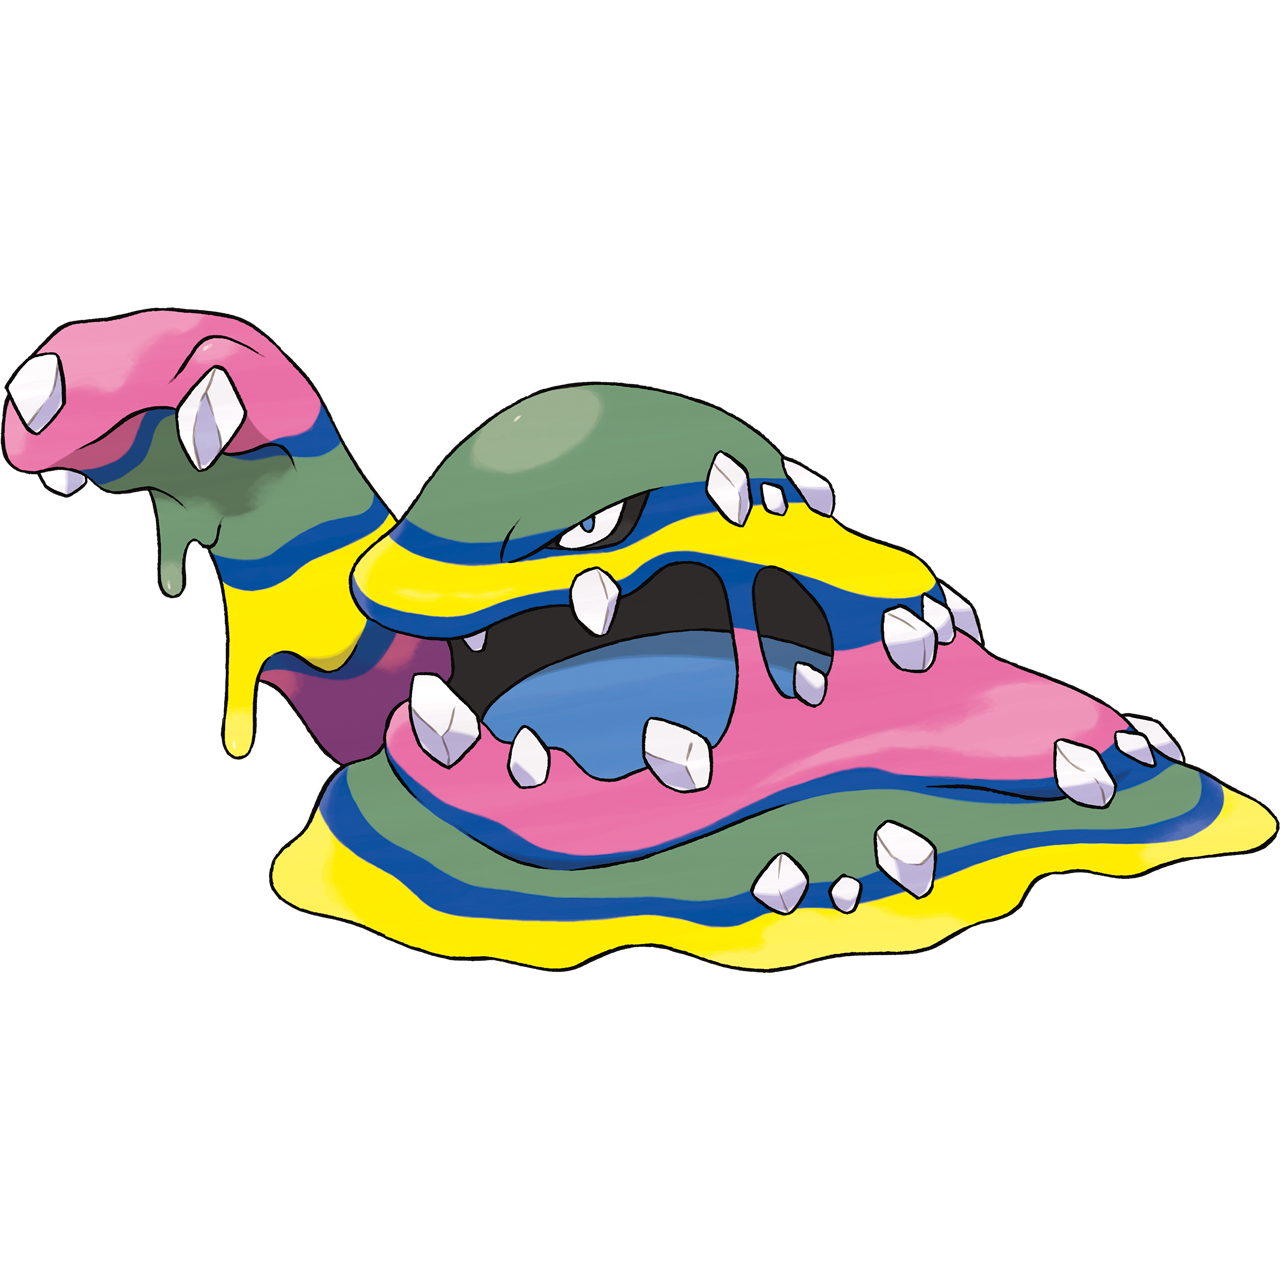 089Muk Alola Dream